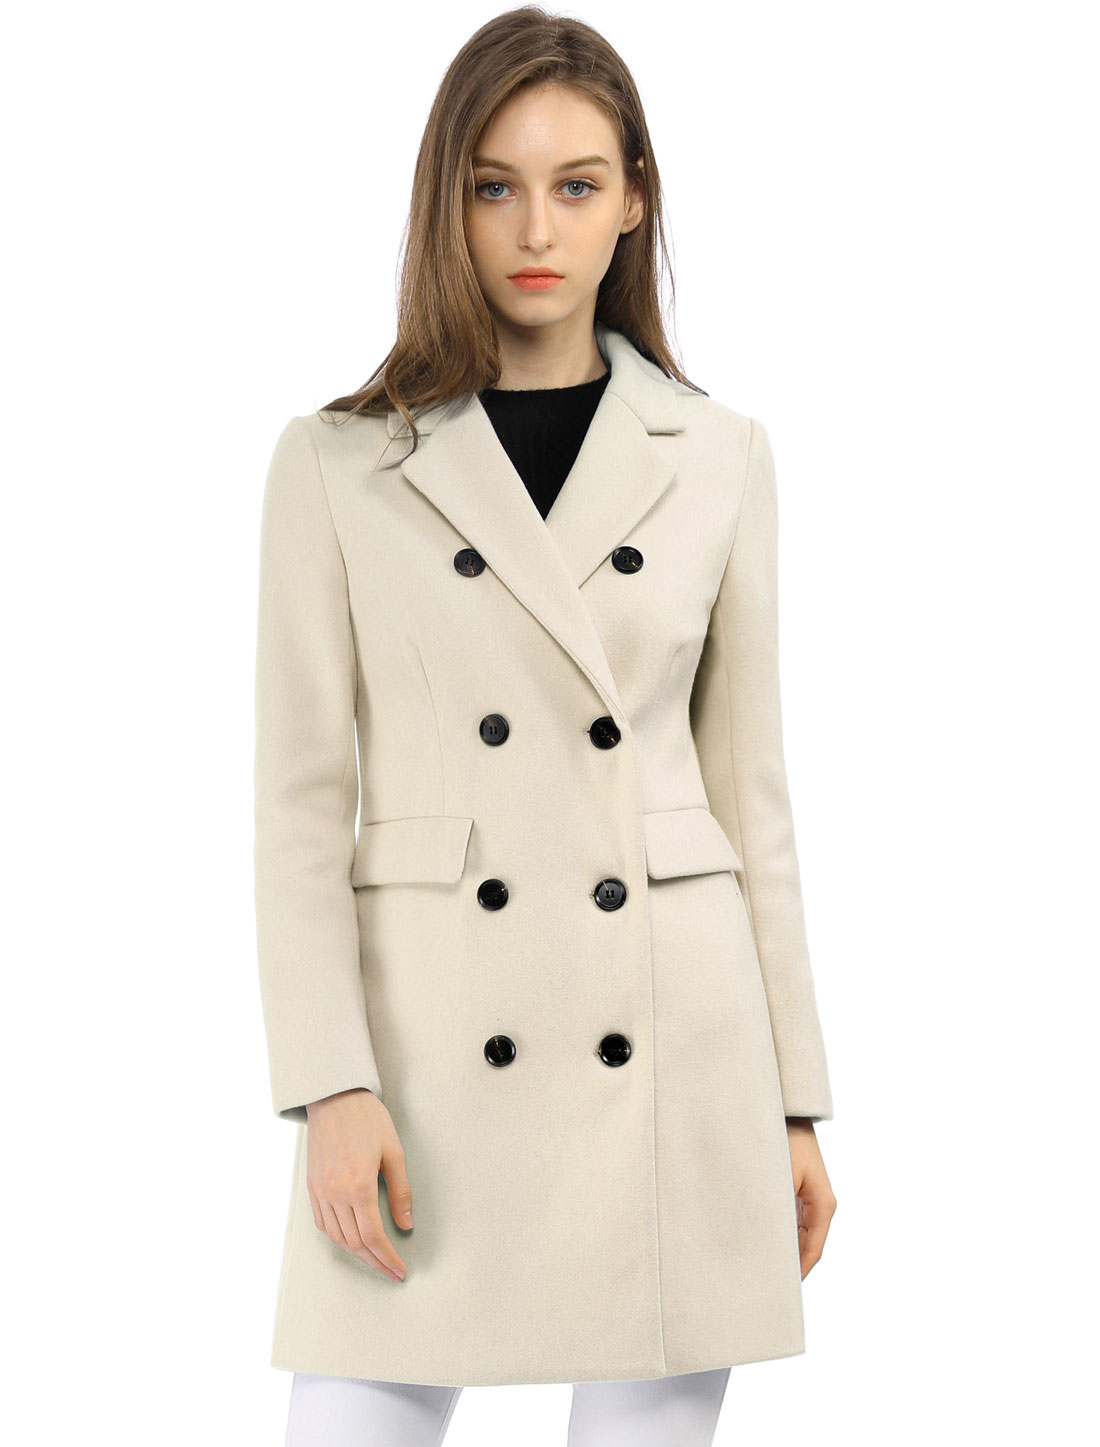 Women Notched Lapel Double Breasted Trench Coat Beige S